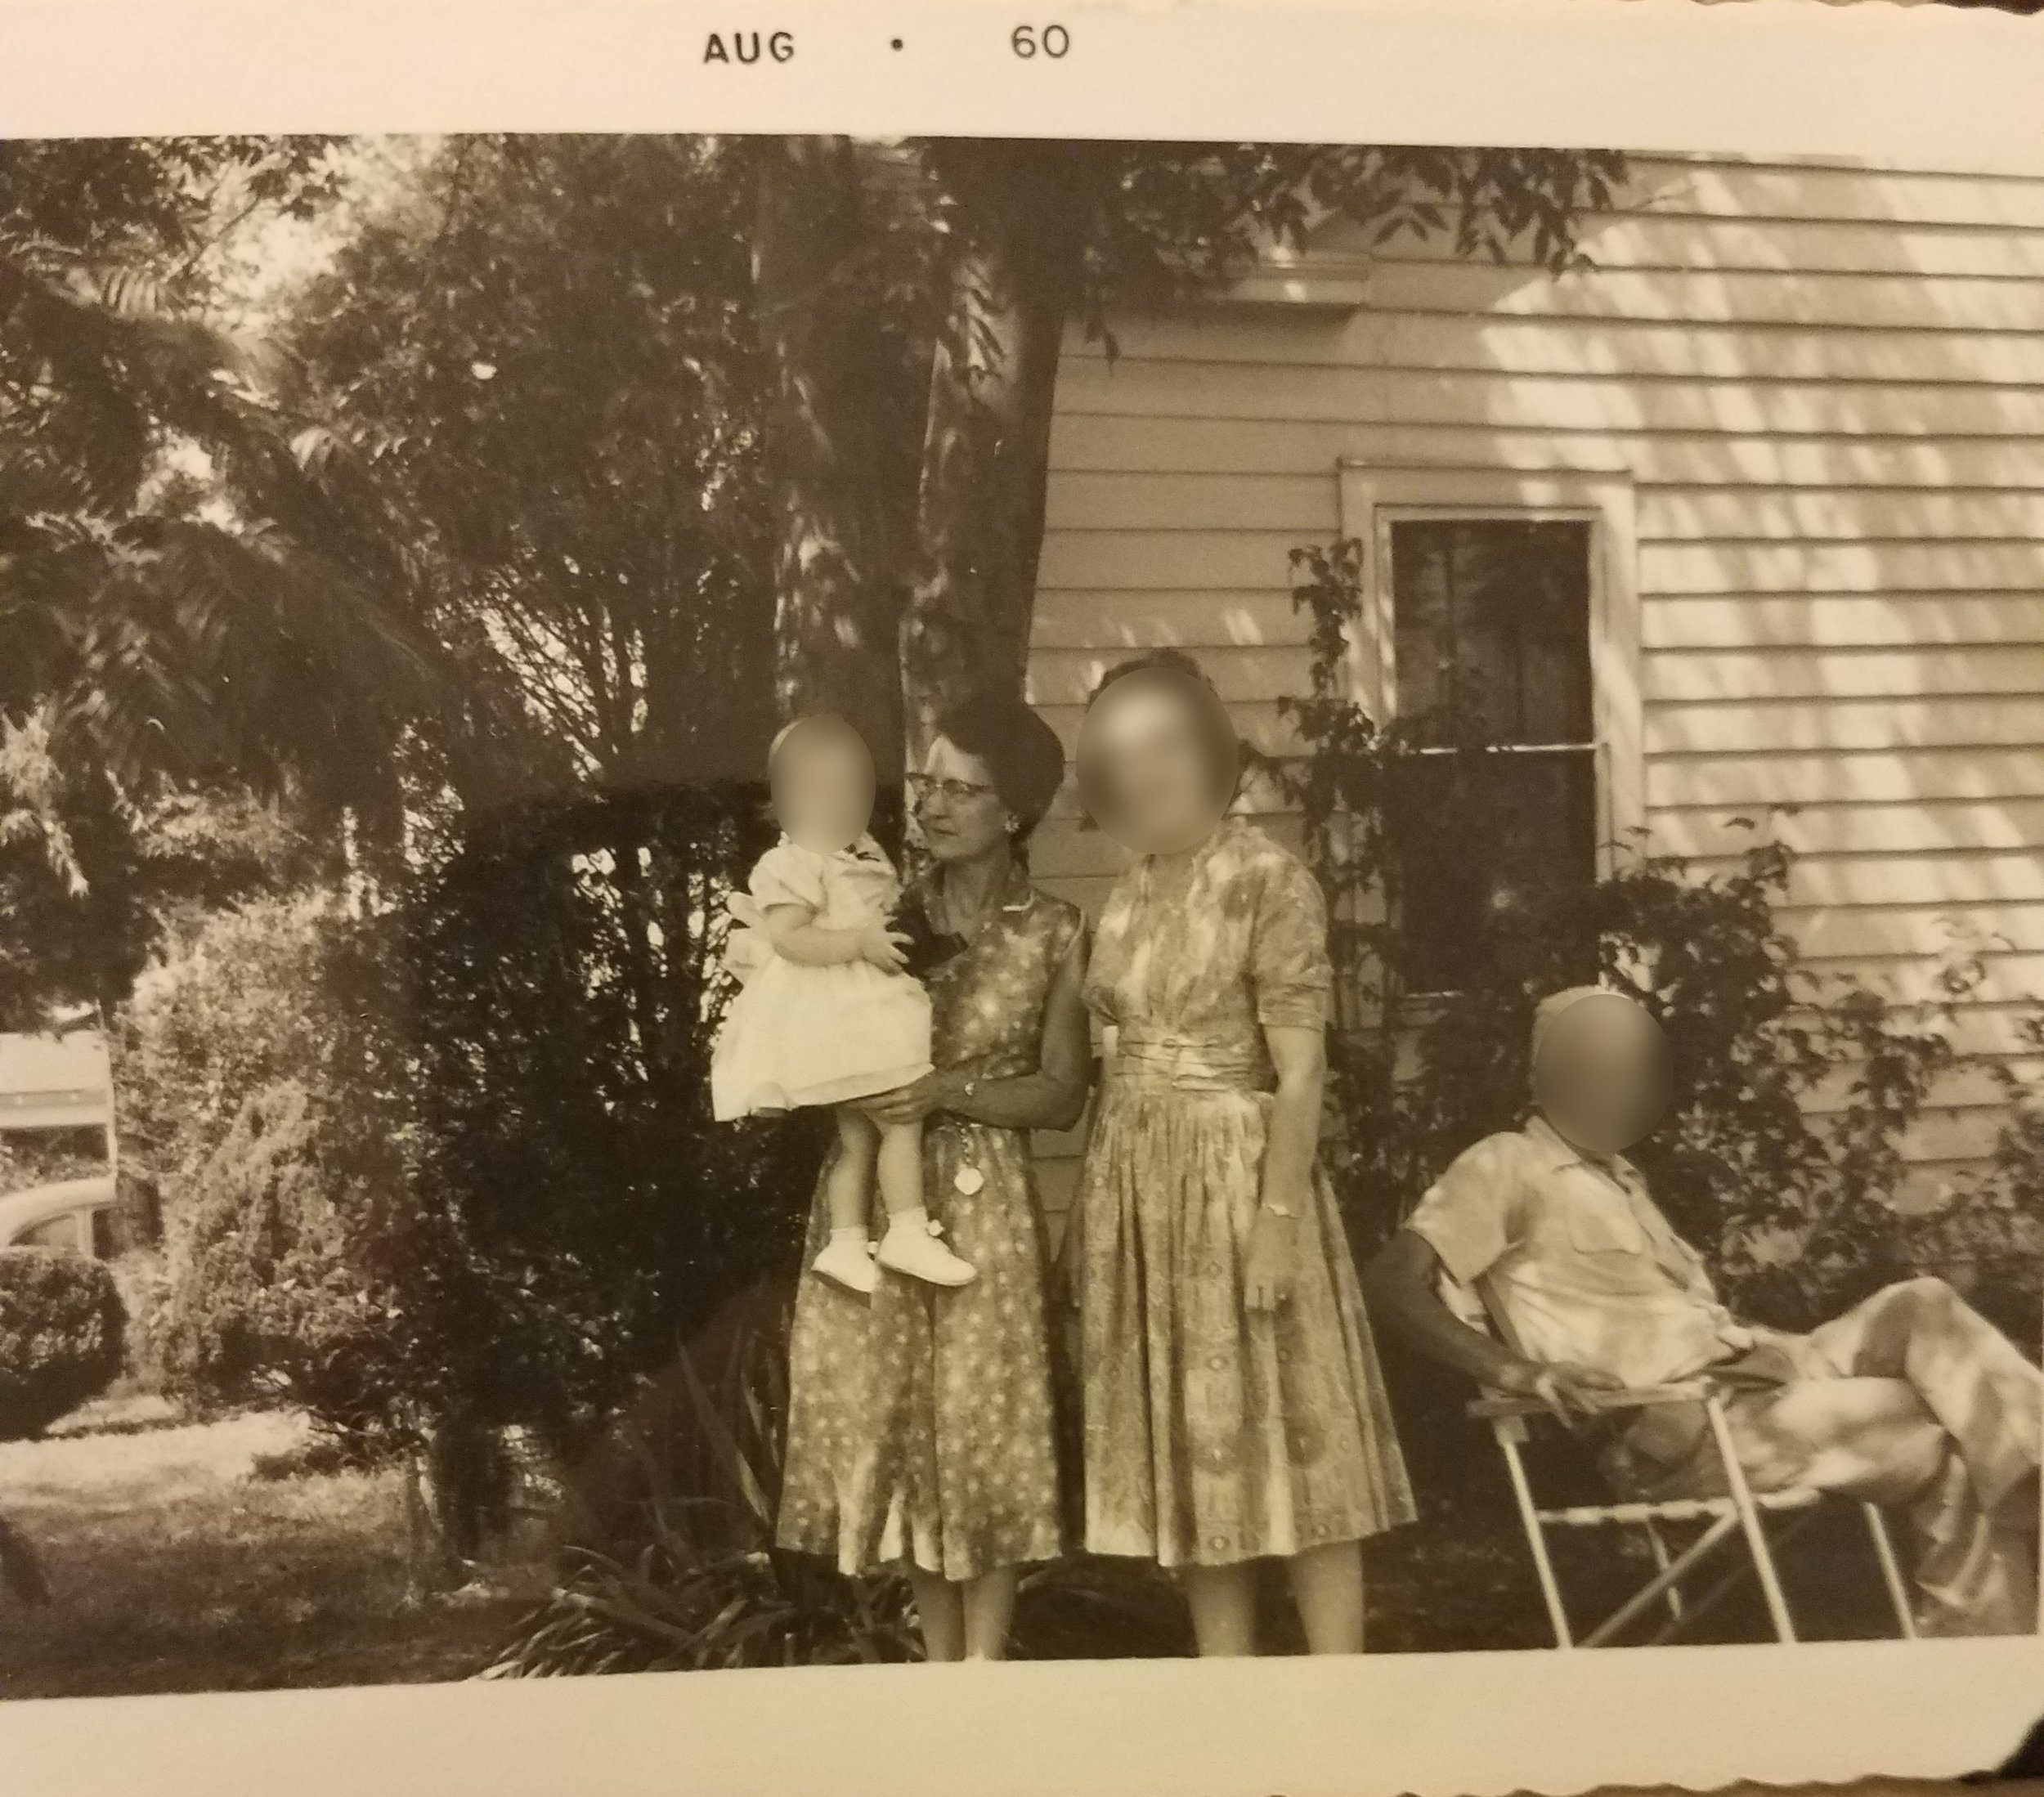 """The home in this photo was next door to the lot where Kathy was found. The woman holding the baby is Lena """"Margaret"""" McSpedden, who burned trash in a barrel 15 feet from Kathy's body just hours before she was found. Because the weeds in the lot were so high, McSpedden didn't notice Kathy.   For perspective, the vacant lot is behind the photographer. Grandview Avenue is to his or her left, and they alley is to his or her right.   Photo taken August 1960, shared courtesy of Julie Johnson"""